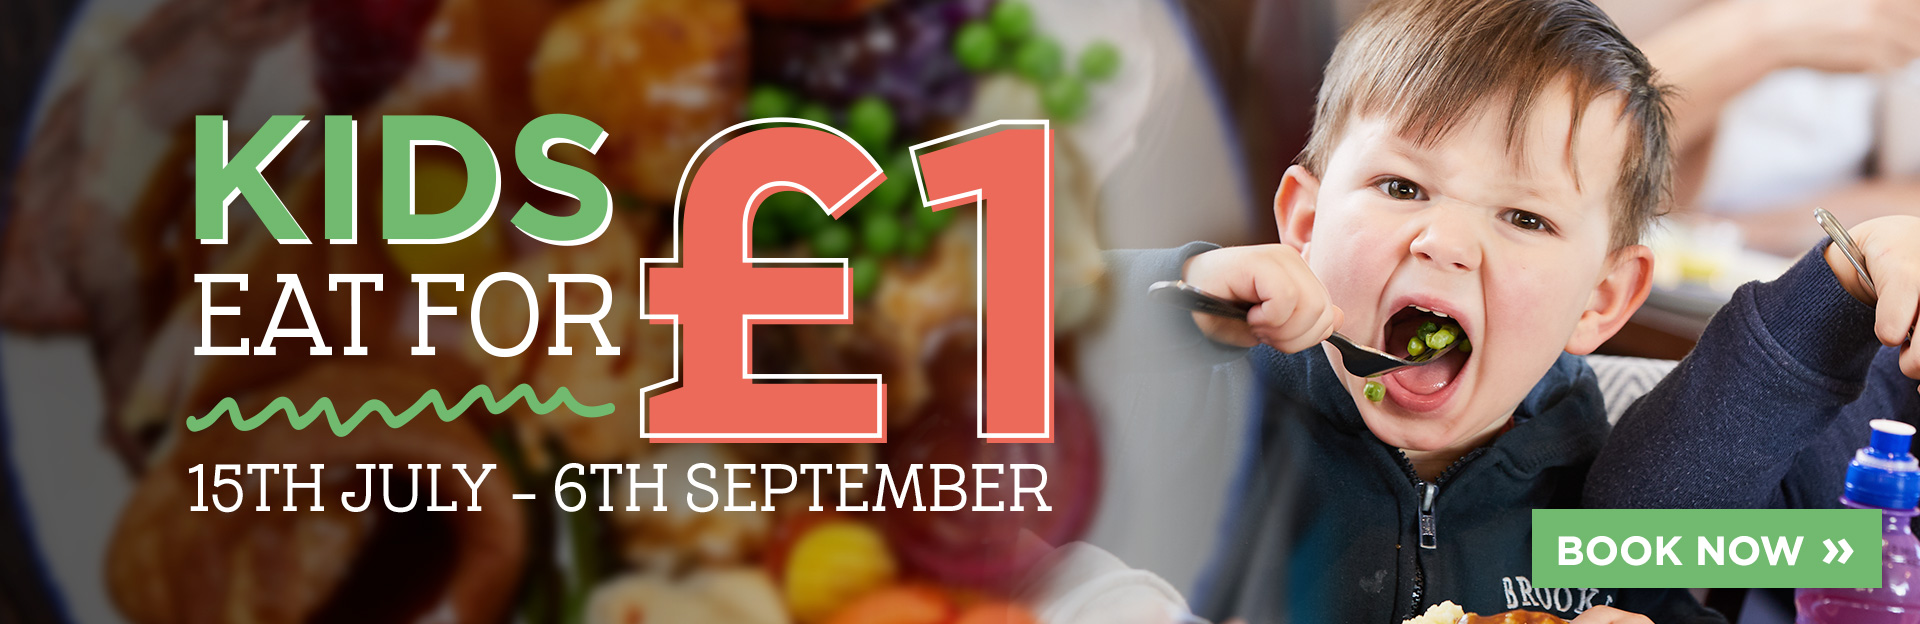 Kids eat for £1 at The Upper Boat Inn